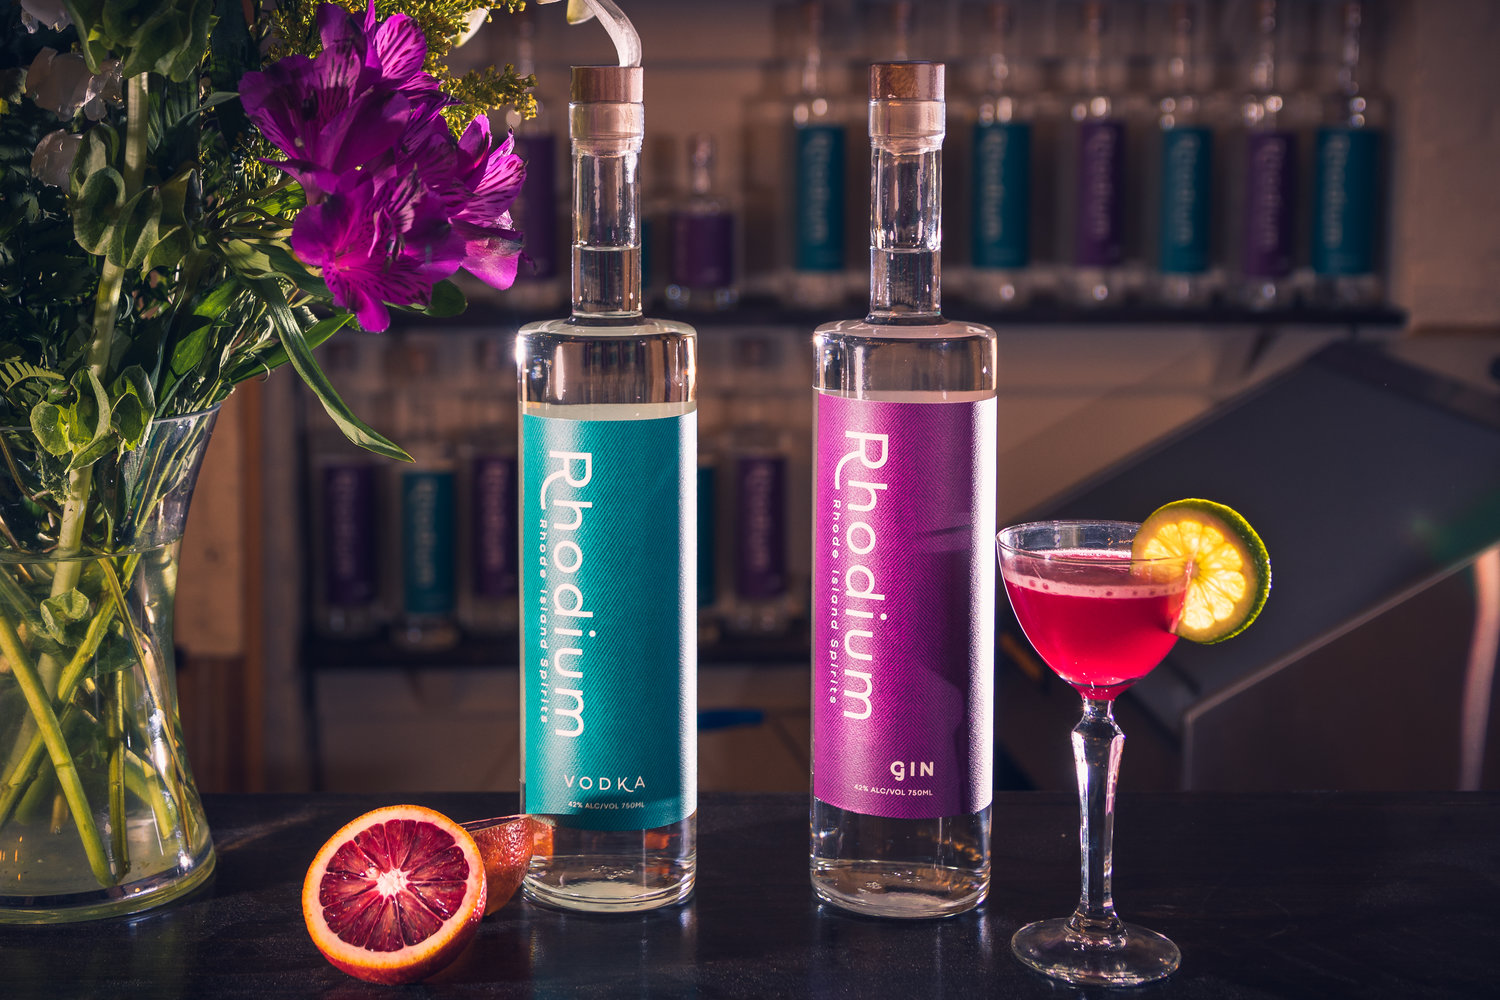 Rhode Island Spirits is new to the scene, offering inventively flavored vodka and gin